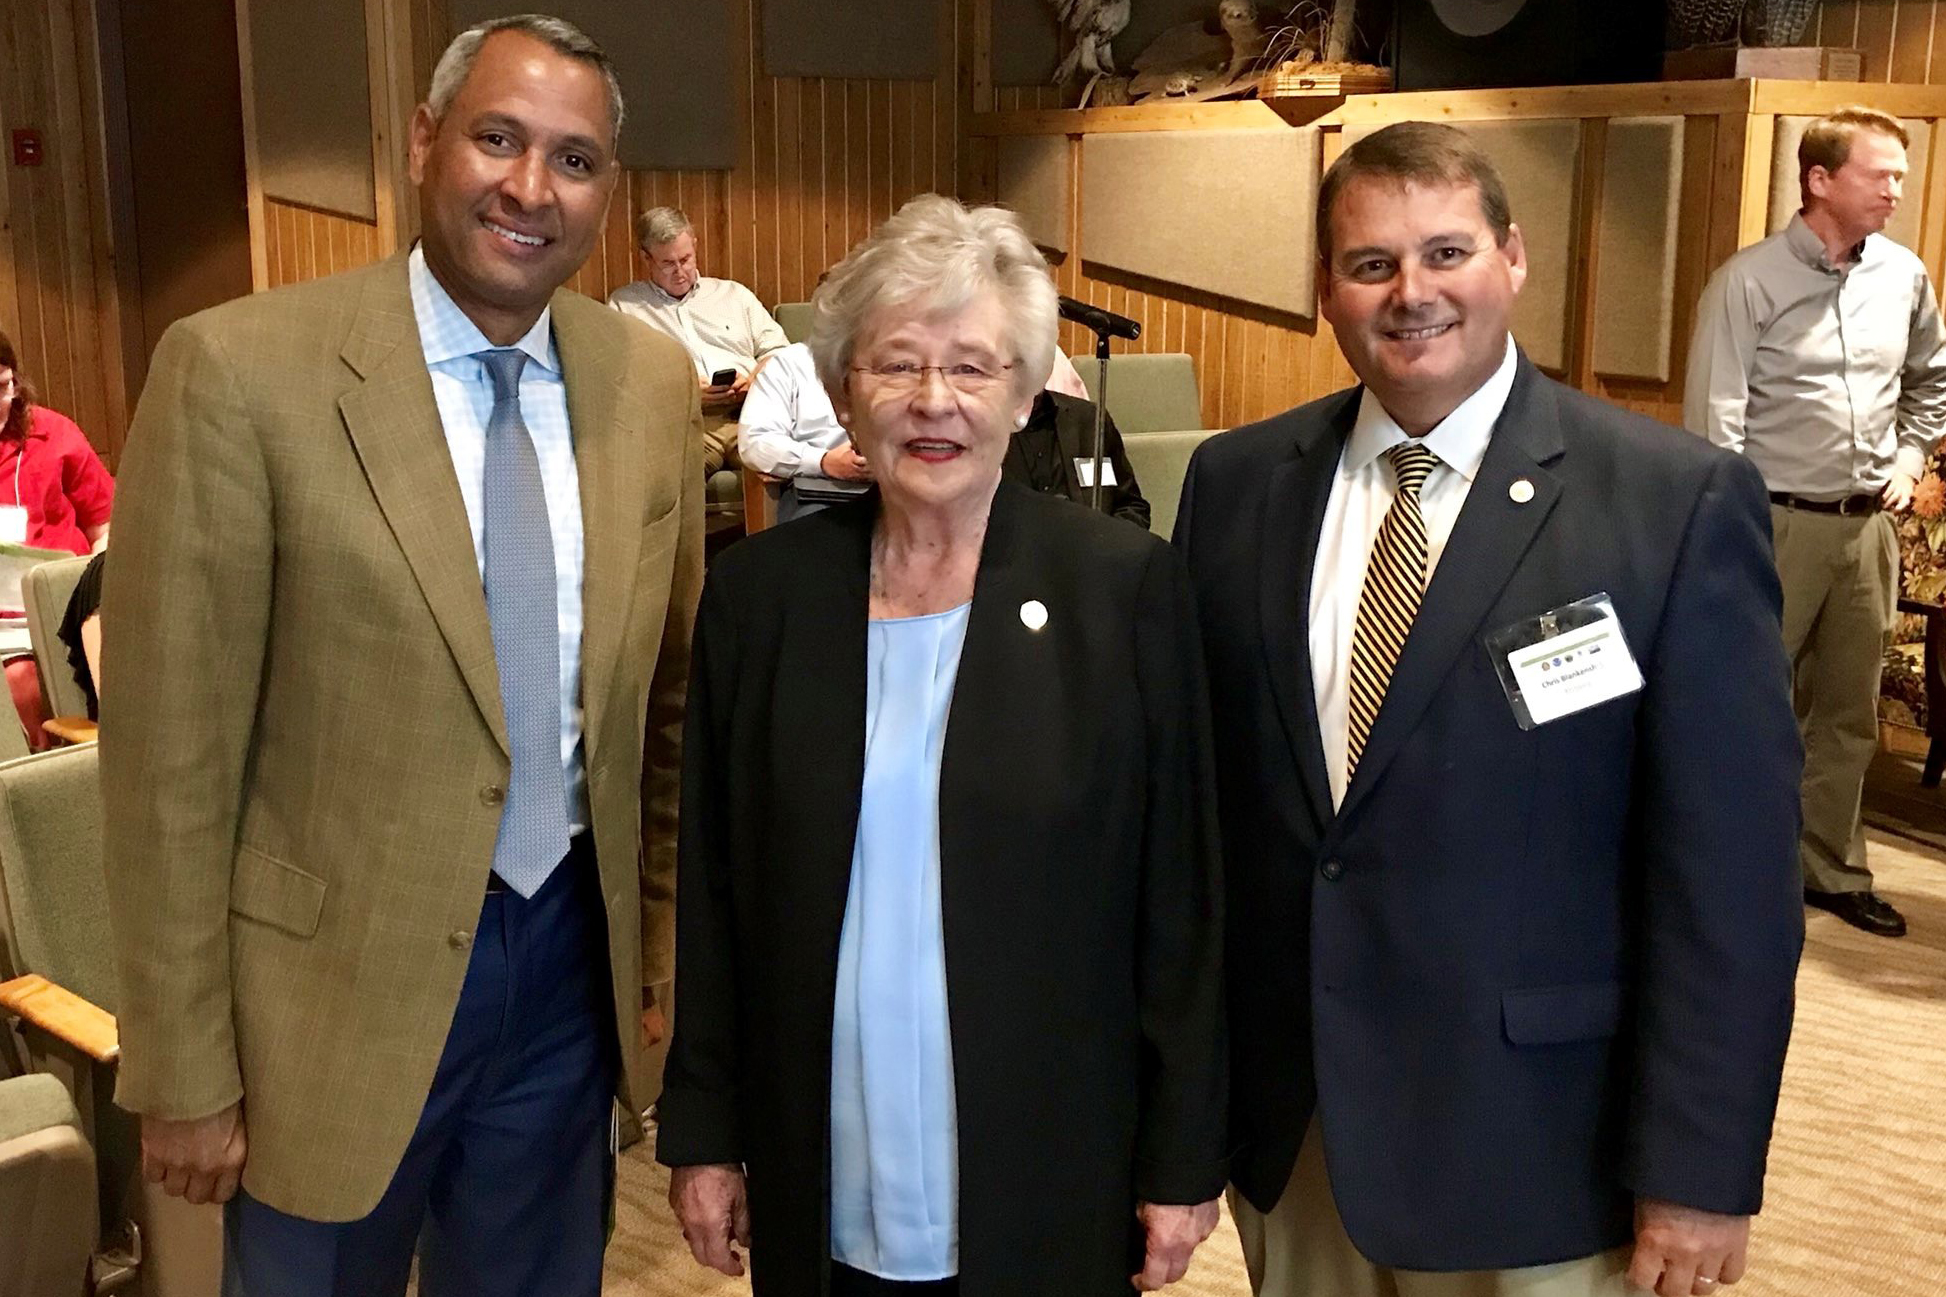 Alabama Governor Kay Ivey, Alabama Commissioner of Conservation Chris Blankenship (right), and meeting facilitator Perry Franklin (left).